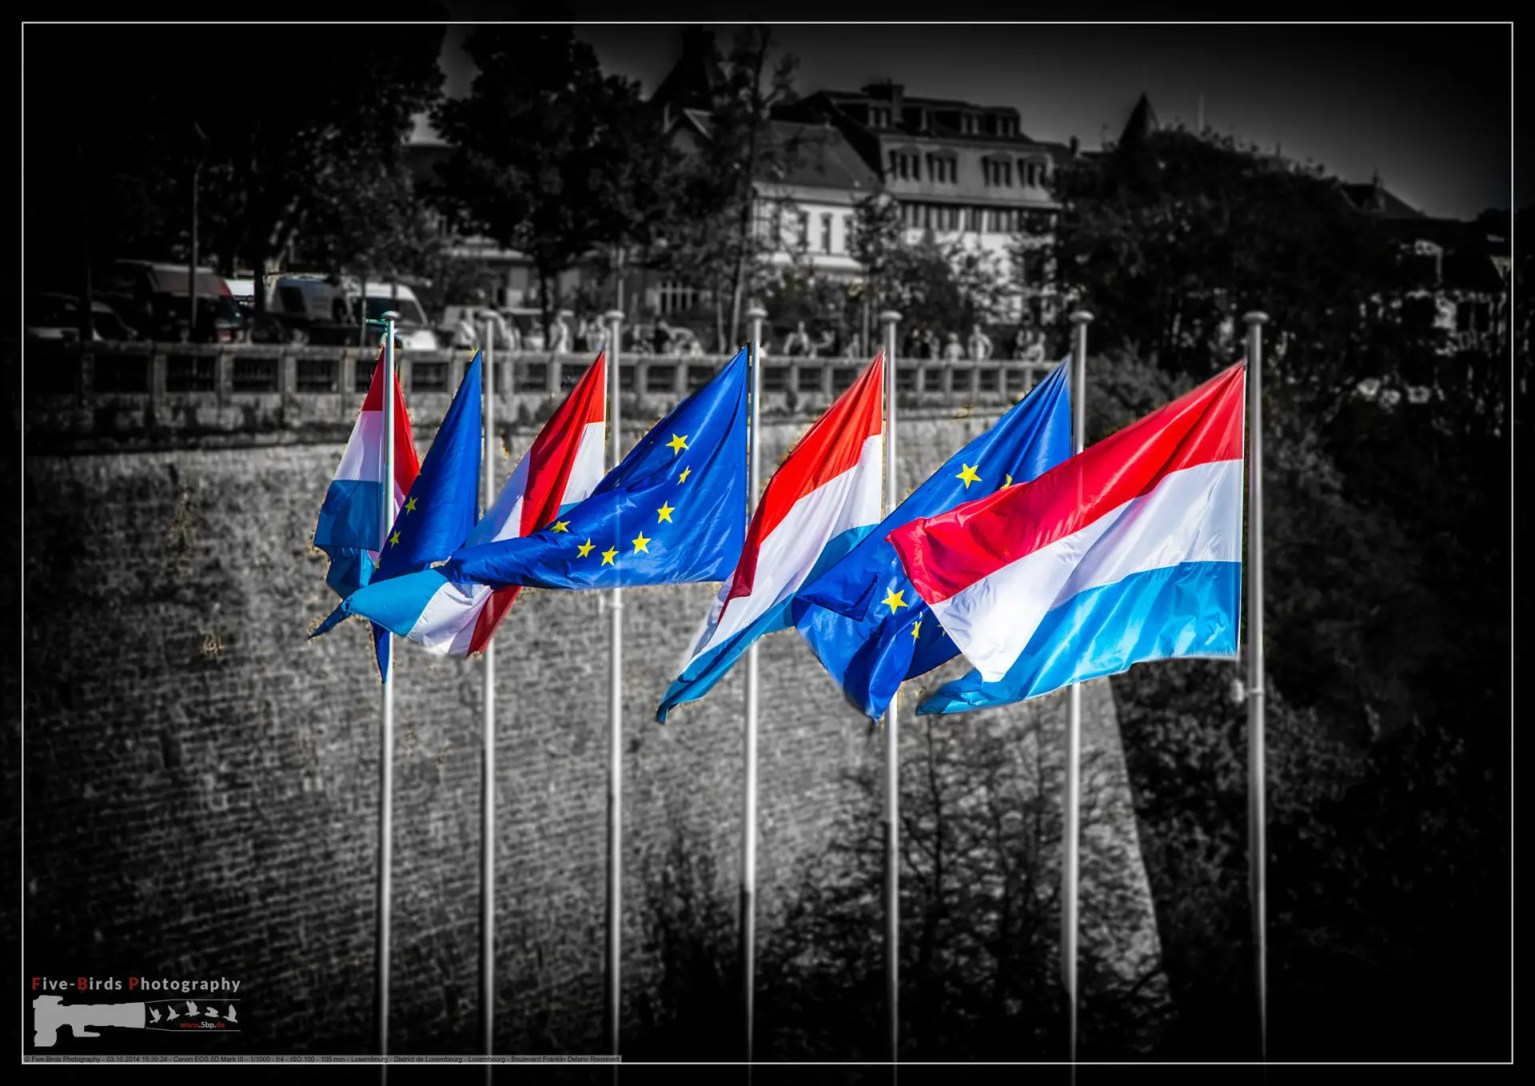 Waving flags of Luxembourg and the European Union in the city of Lucembourg